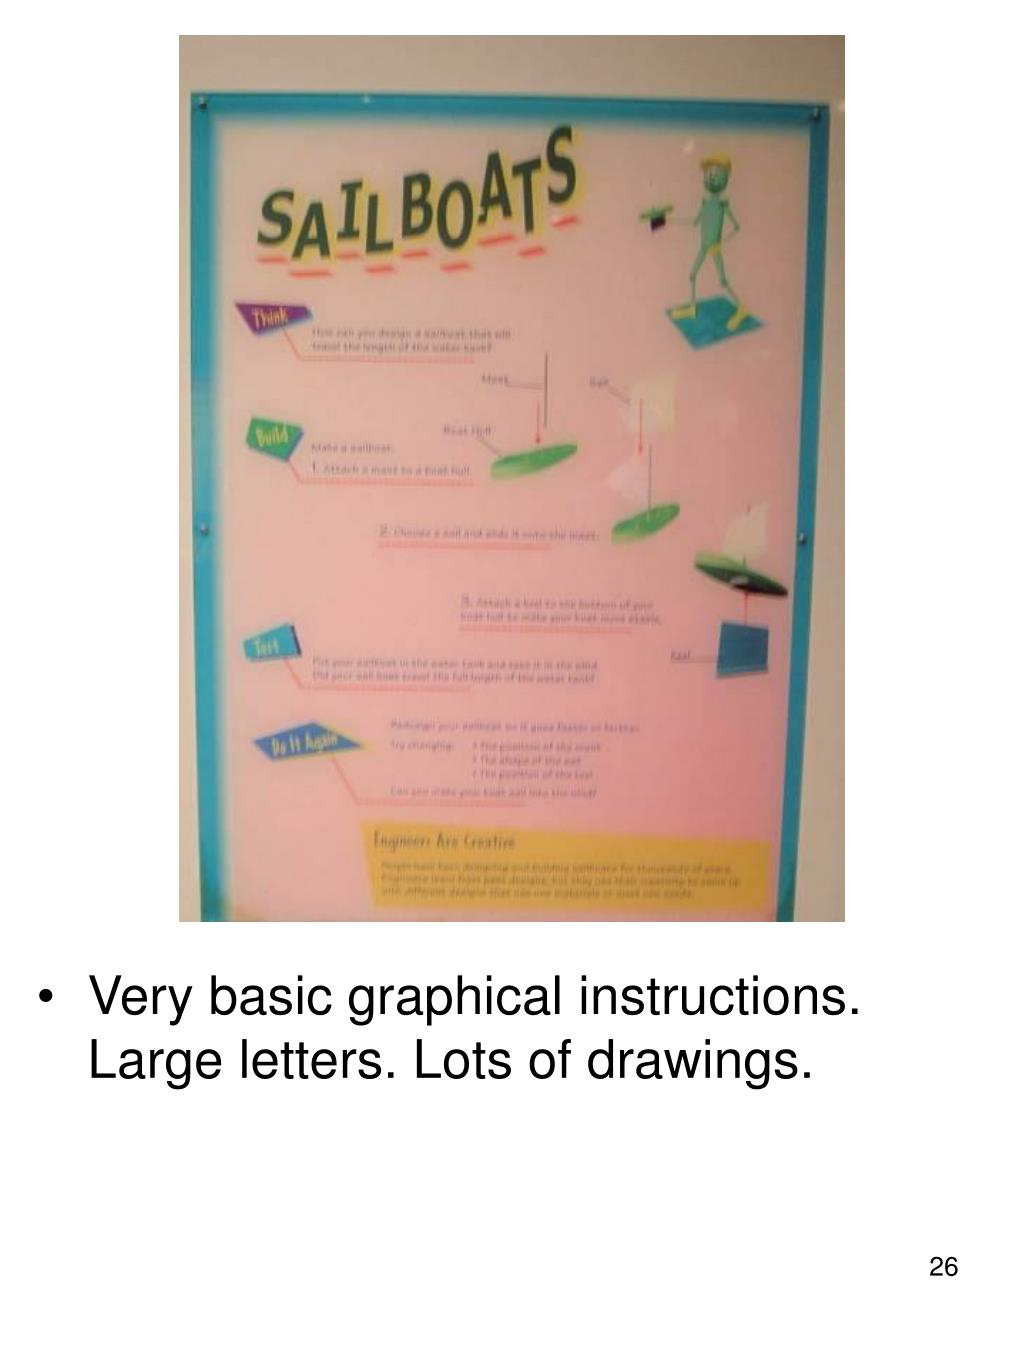 Very basic graphical instructions. Large letters. Lots of drawings.